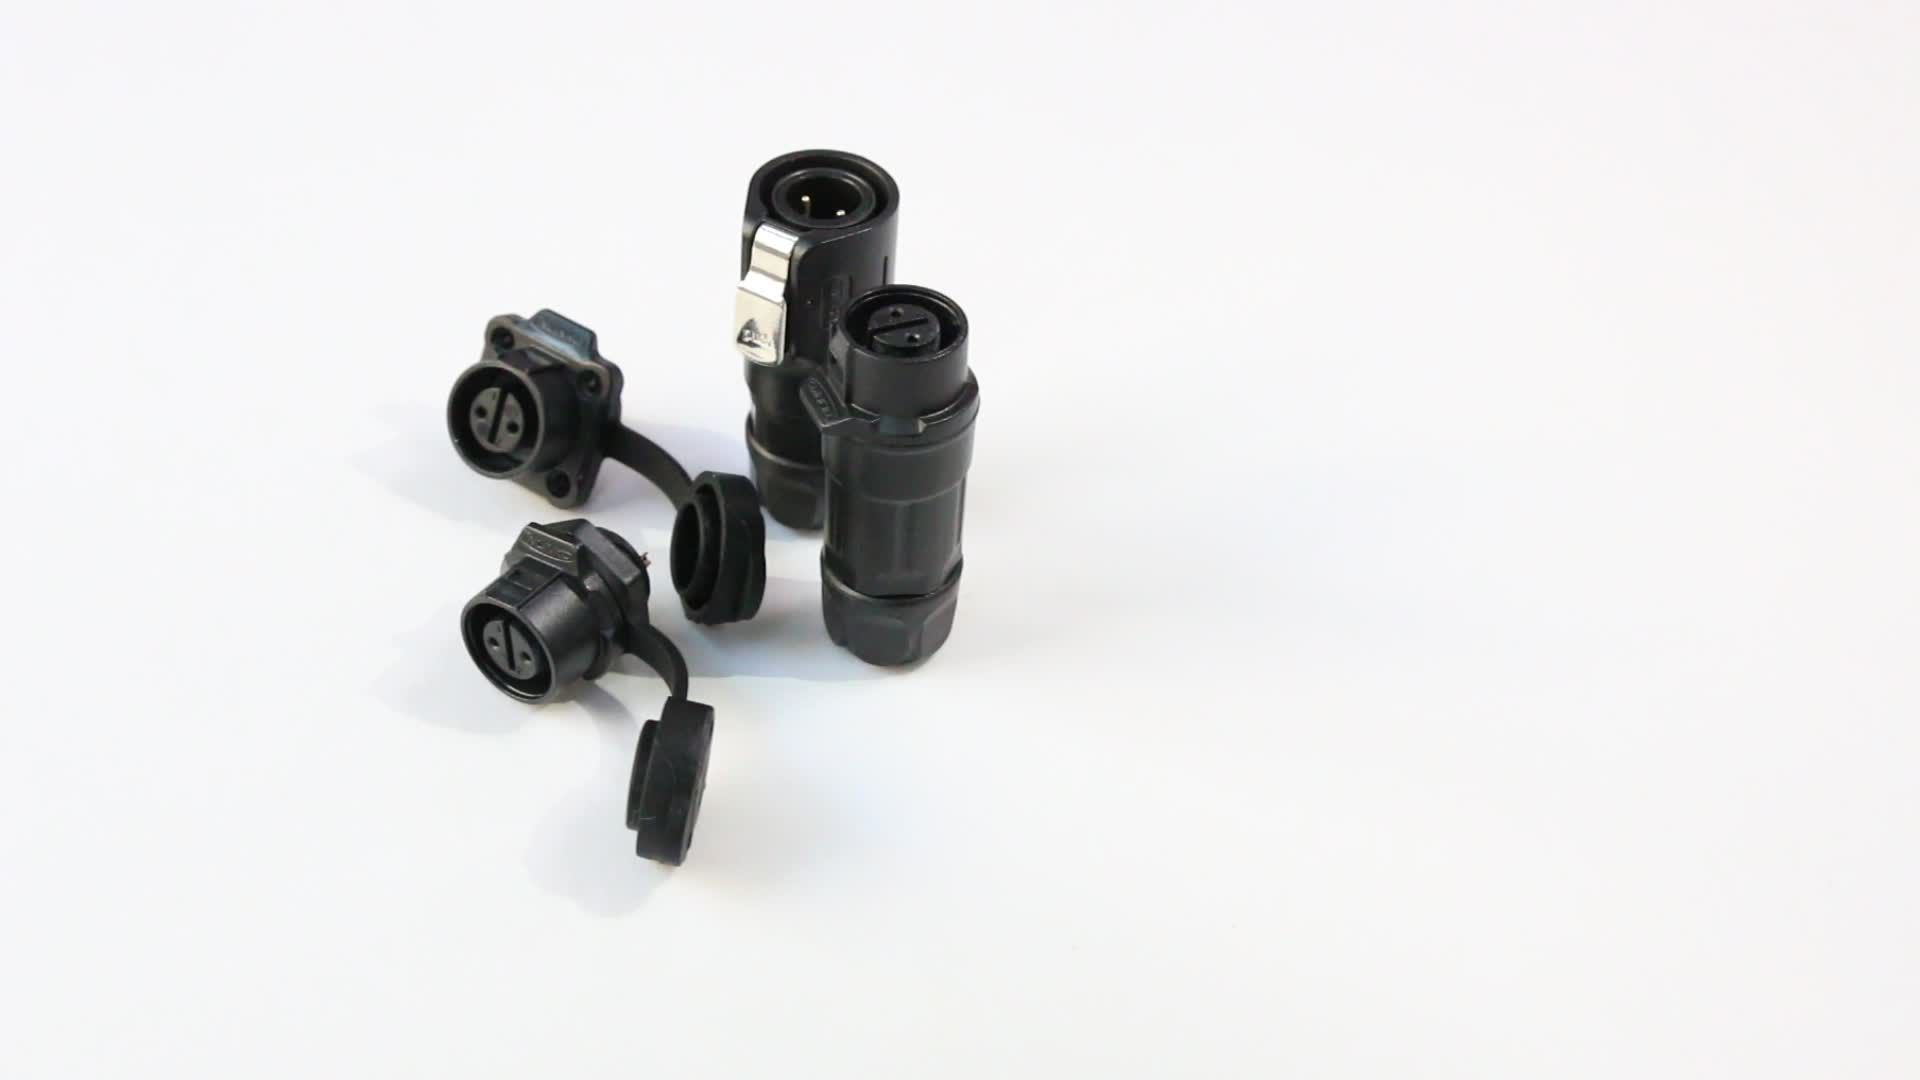 PBT Plastic Raw Material Circular Shape Black M12 2pin to RS232 Flange Cable Connector